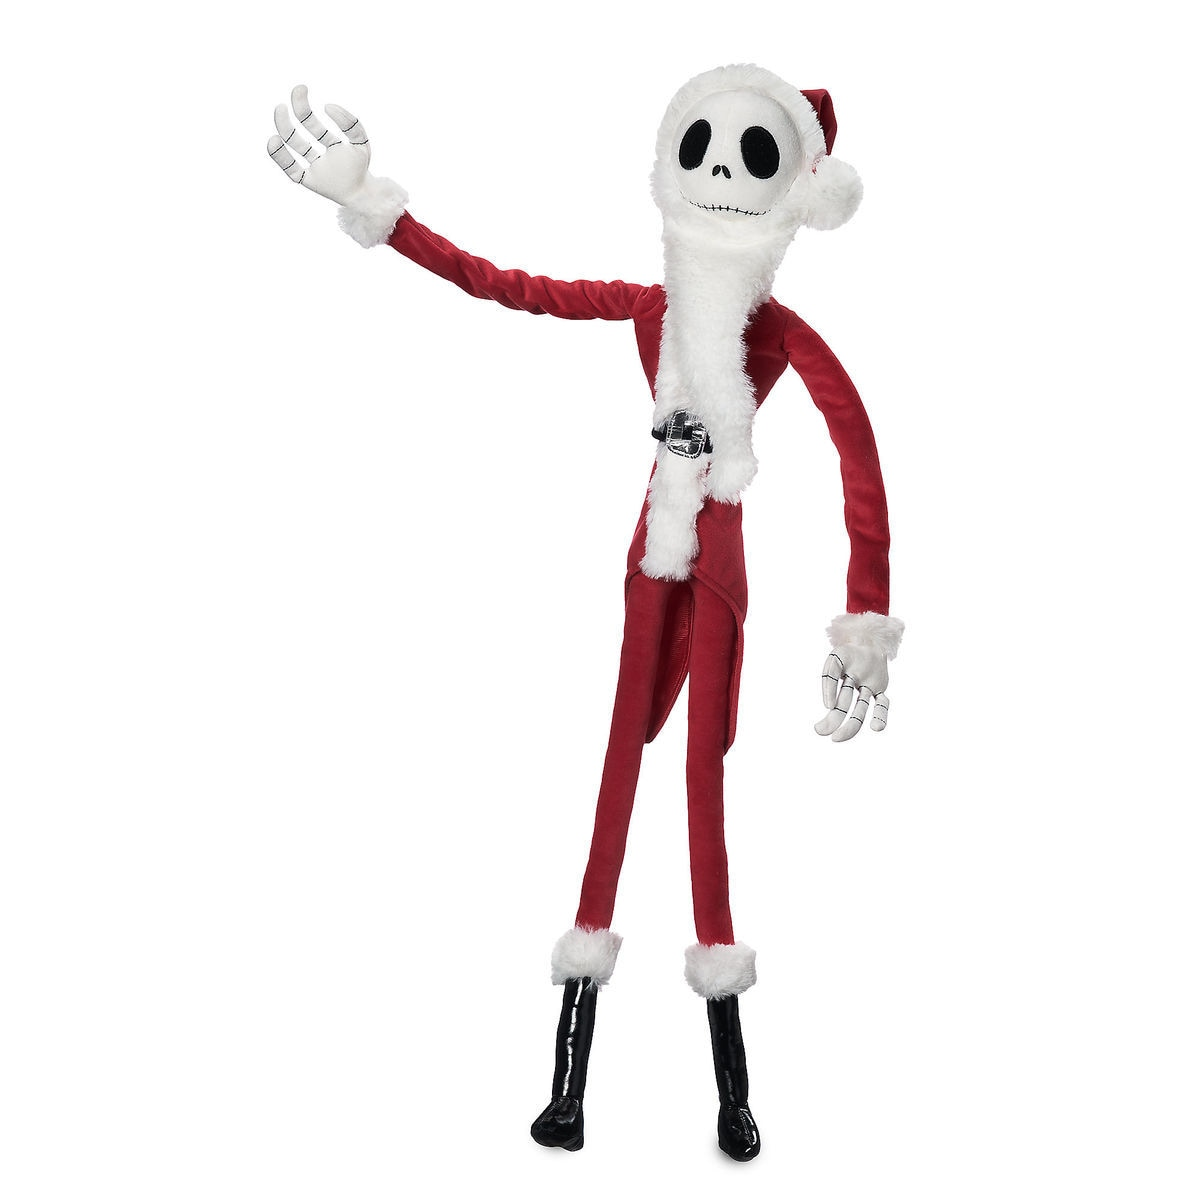 Product Image of Jack Skellington Sandy Claws Plush - Tim Burton's The Nightmare Before Christmas -